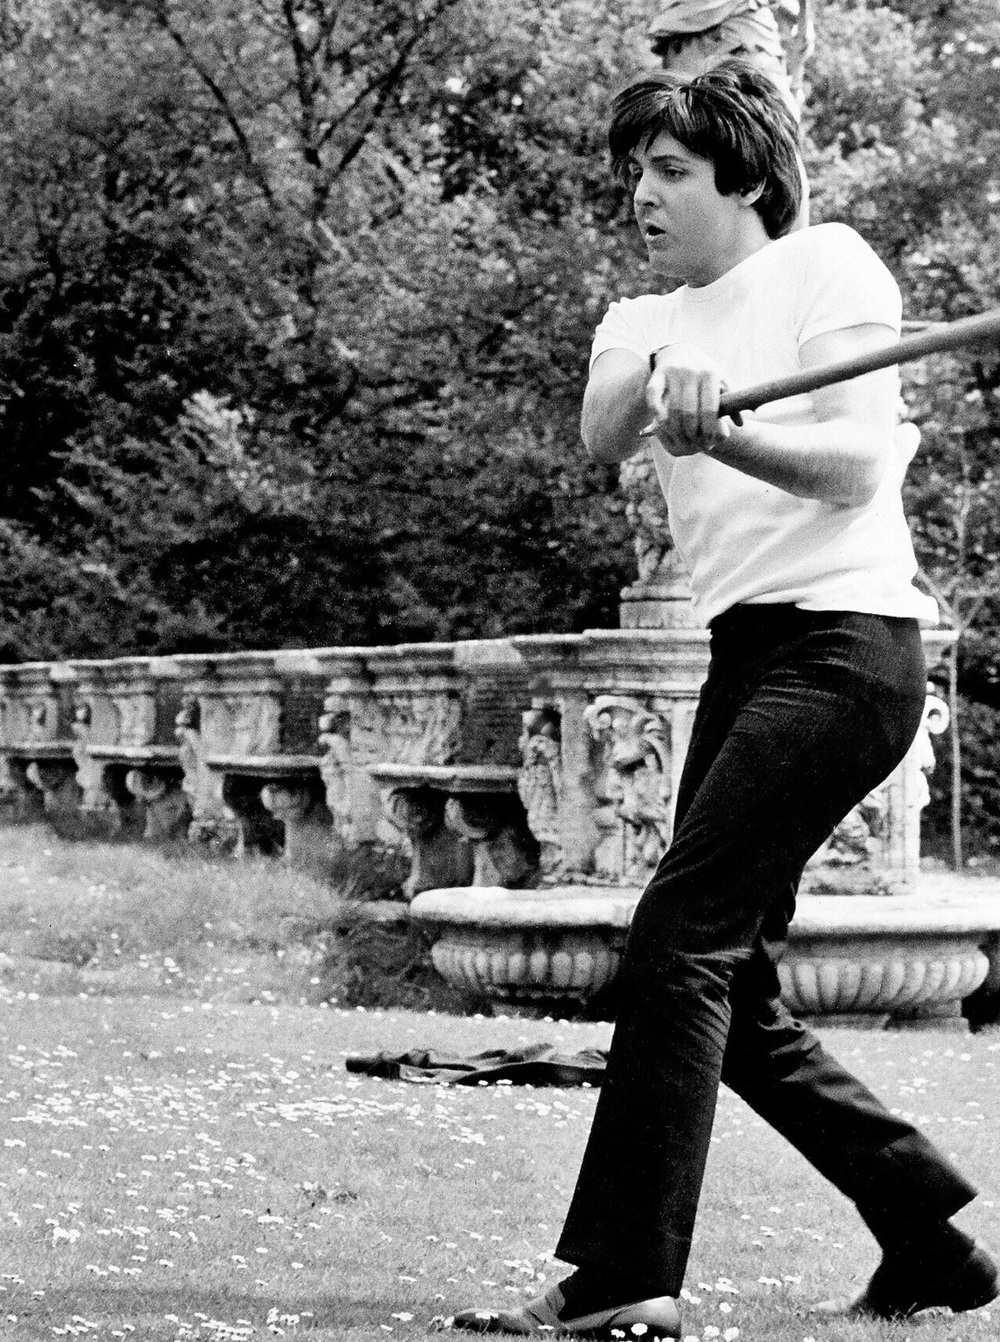 Paul McCartney playing baseball, circa 1965.